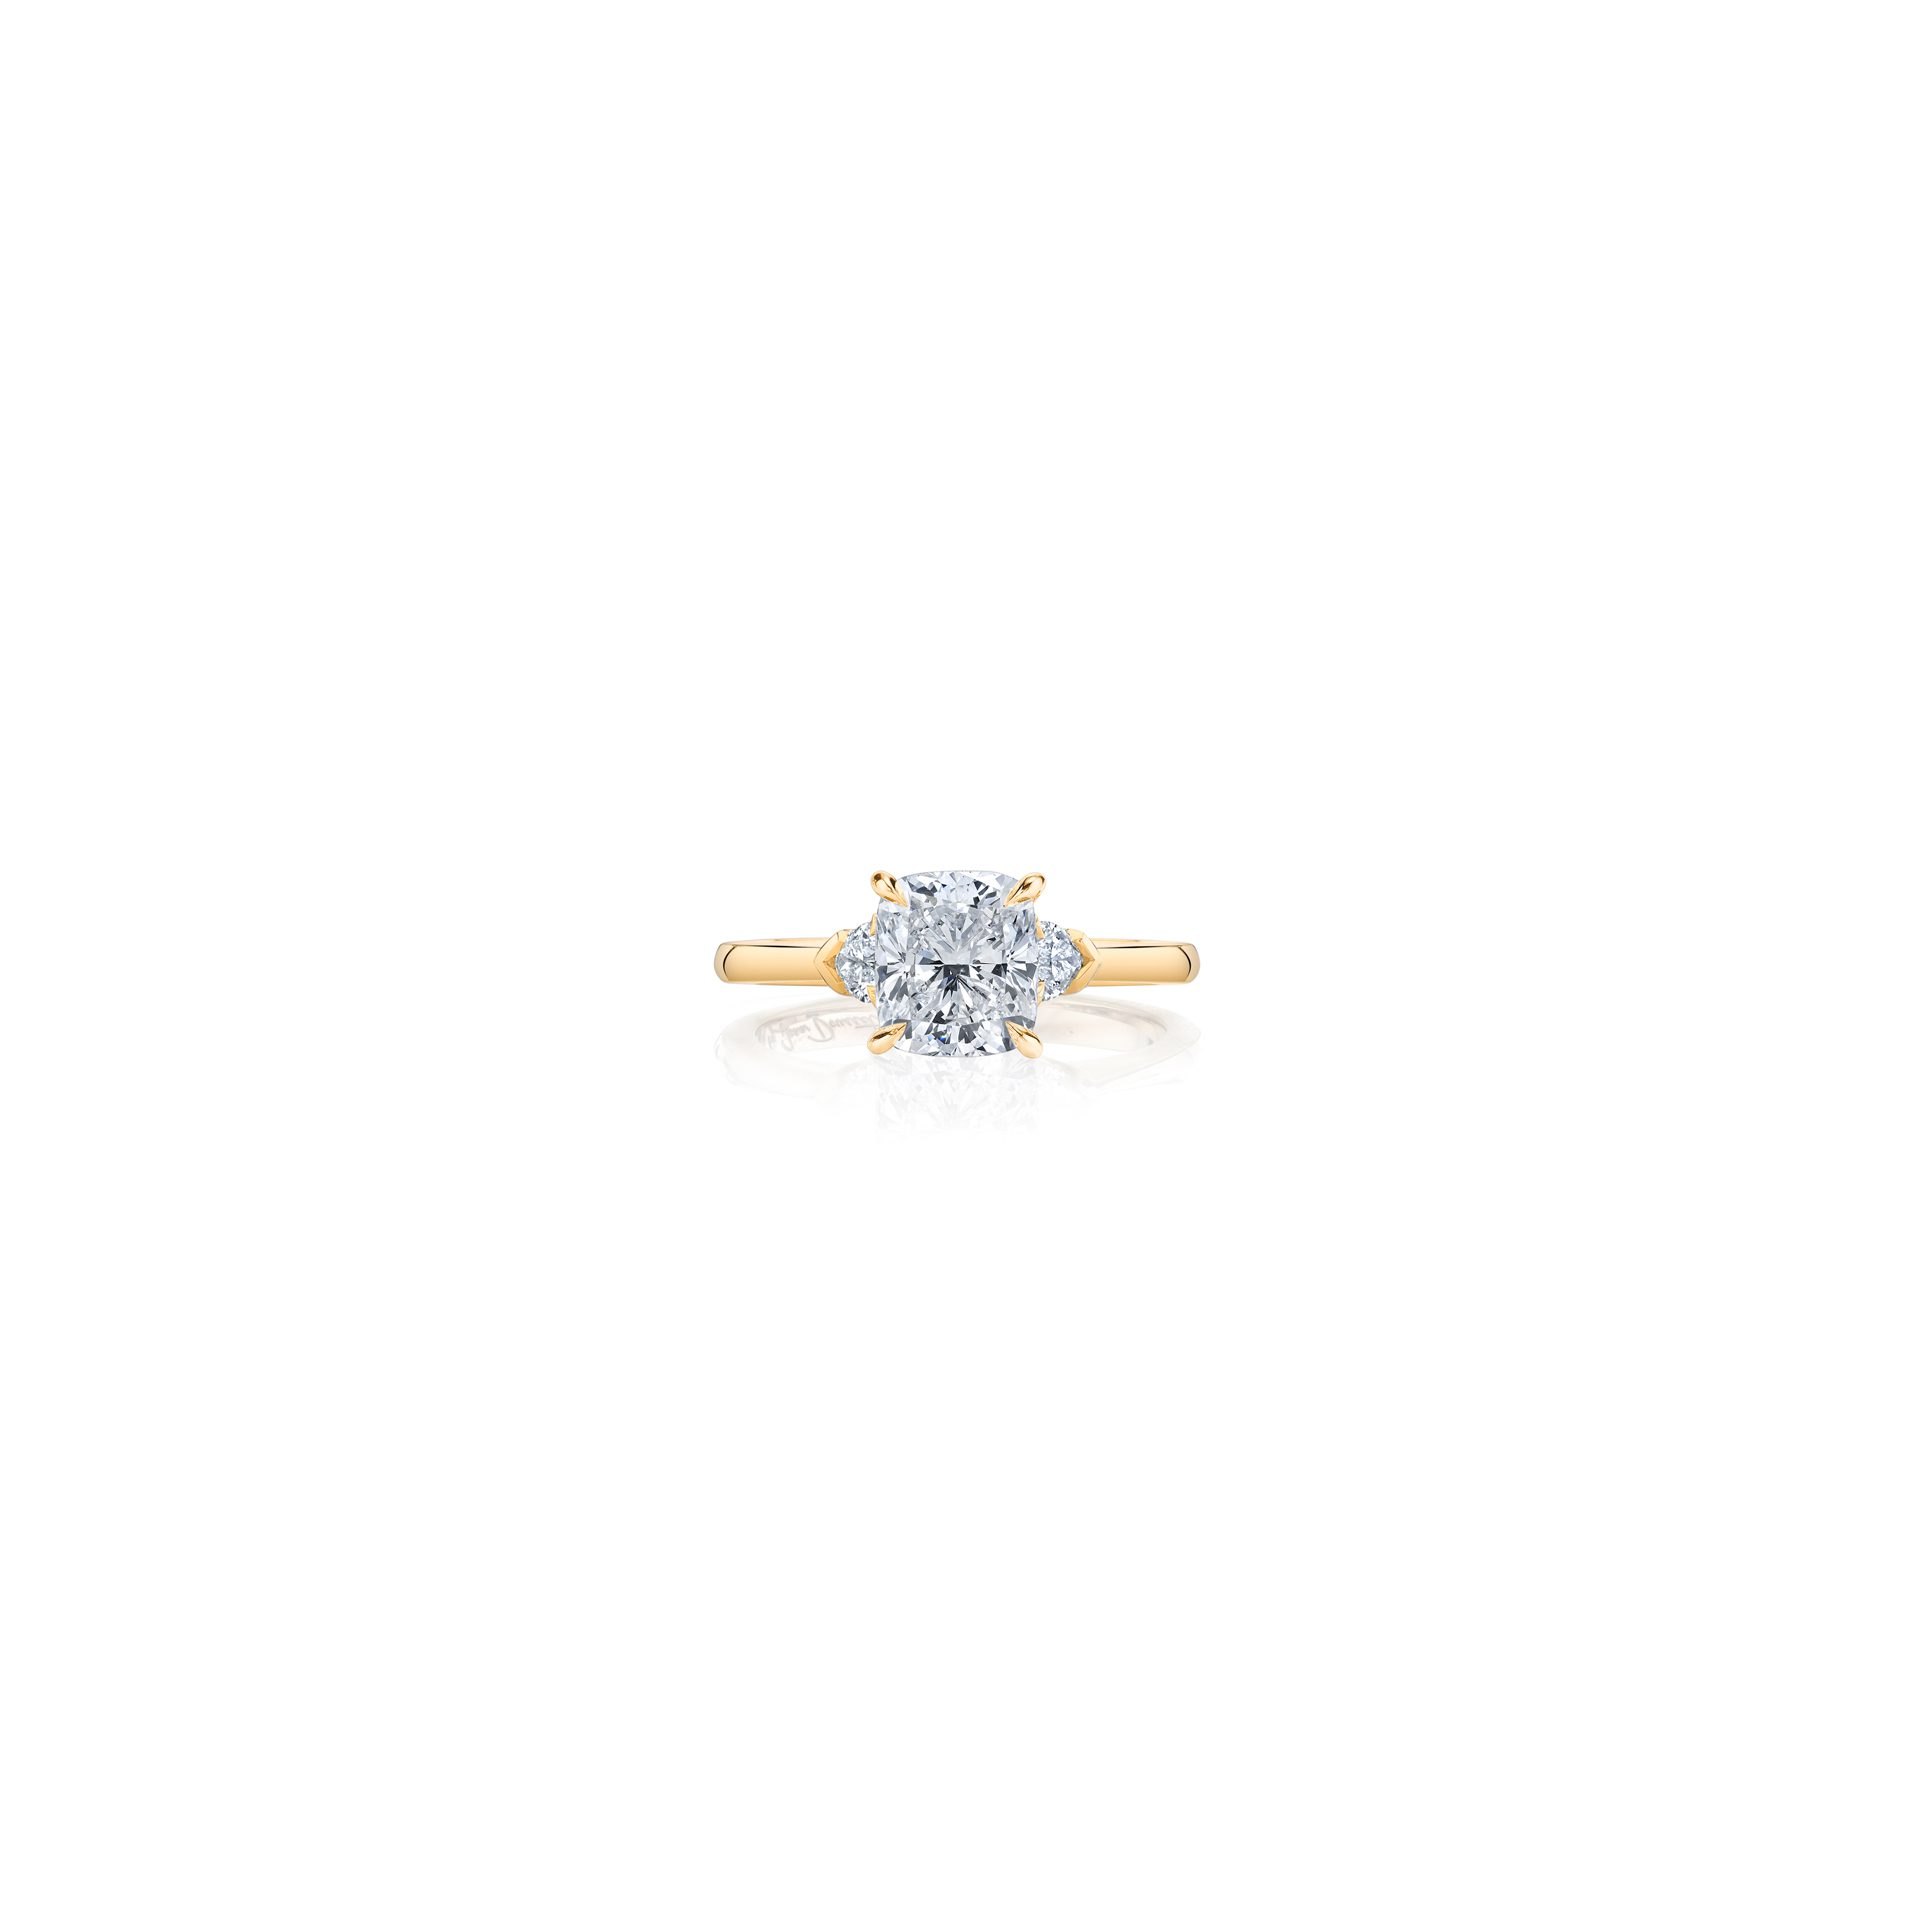 Claire Cushion Three Stone Engagement Ring with heart-shaped diamond side stones in 18k Yellow Gold Front View by Oui by Jean Dousset